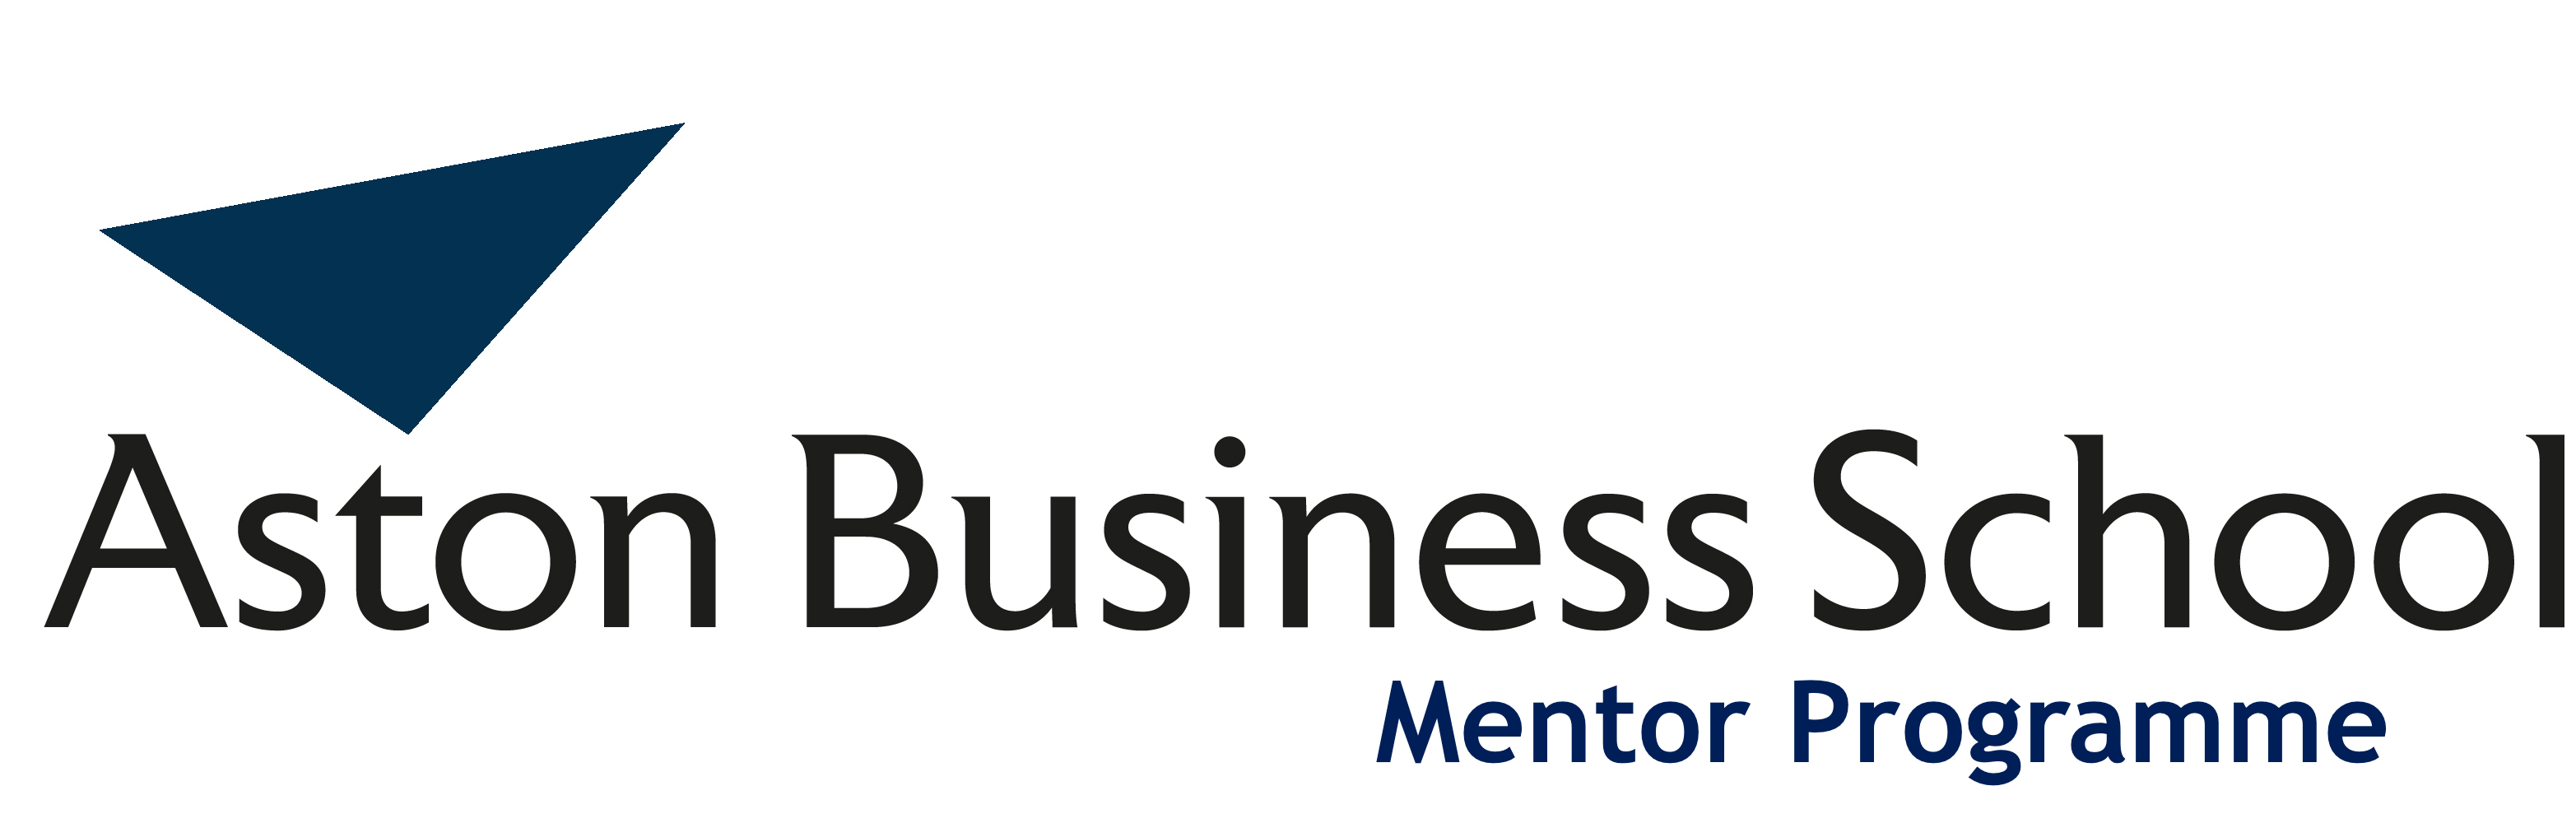 Alan Crouch MBA and CE0 of the Business Growth School Proud to be a Mentor on the Aston University mentor Programme